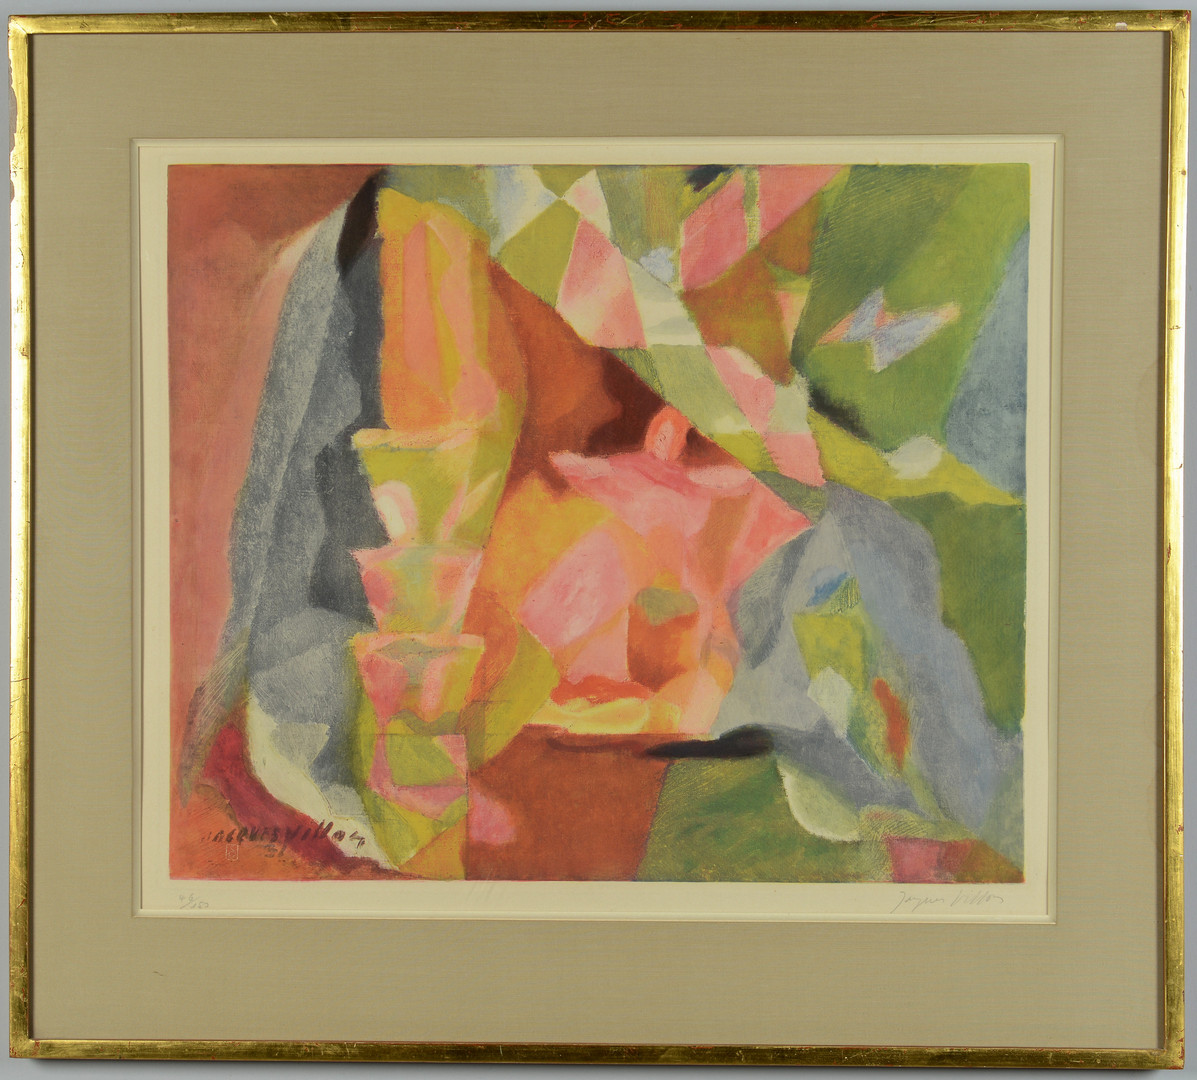 Lot 503: Jacques Villon signed aquatint